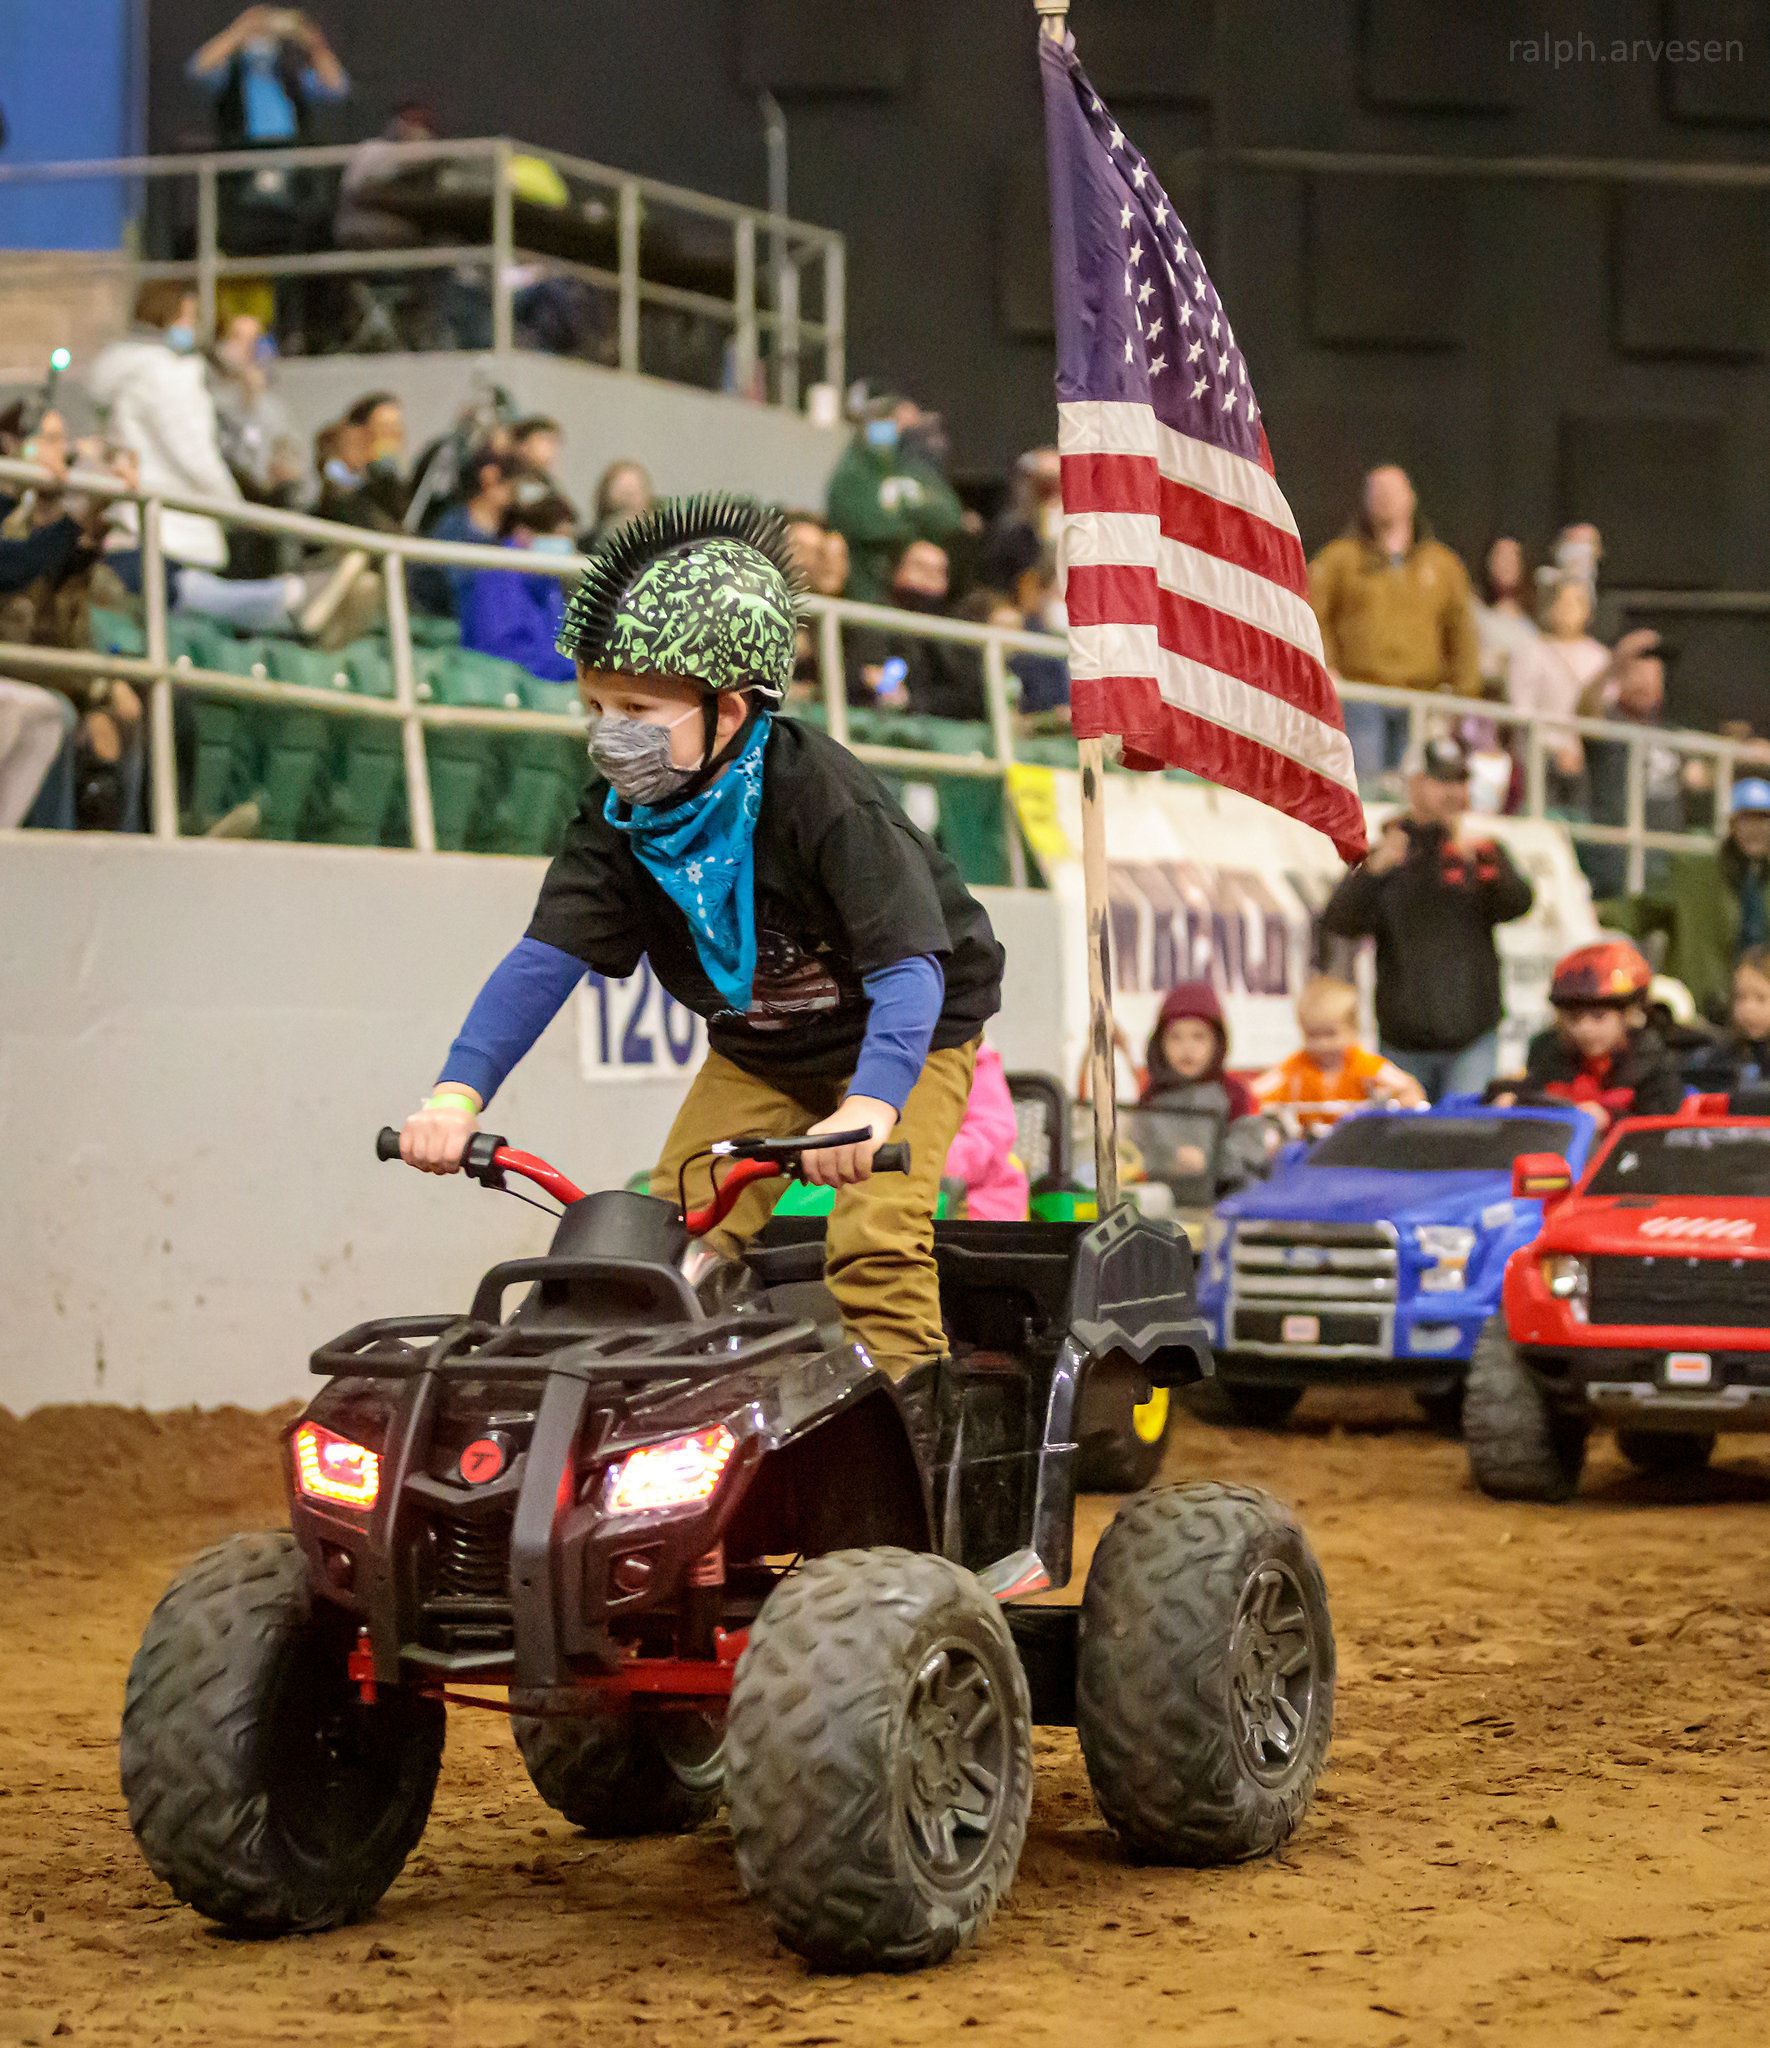 No Limits Kids Power Wheels | Texas Review | Ralph Arvesen